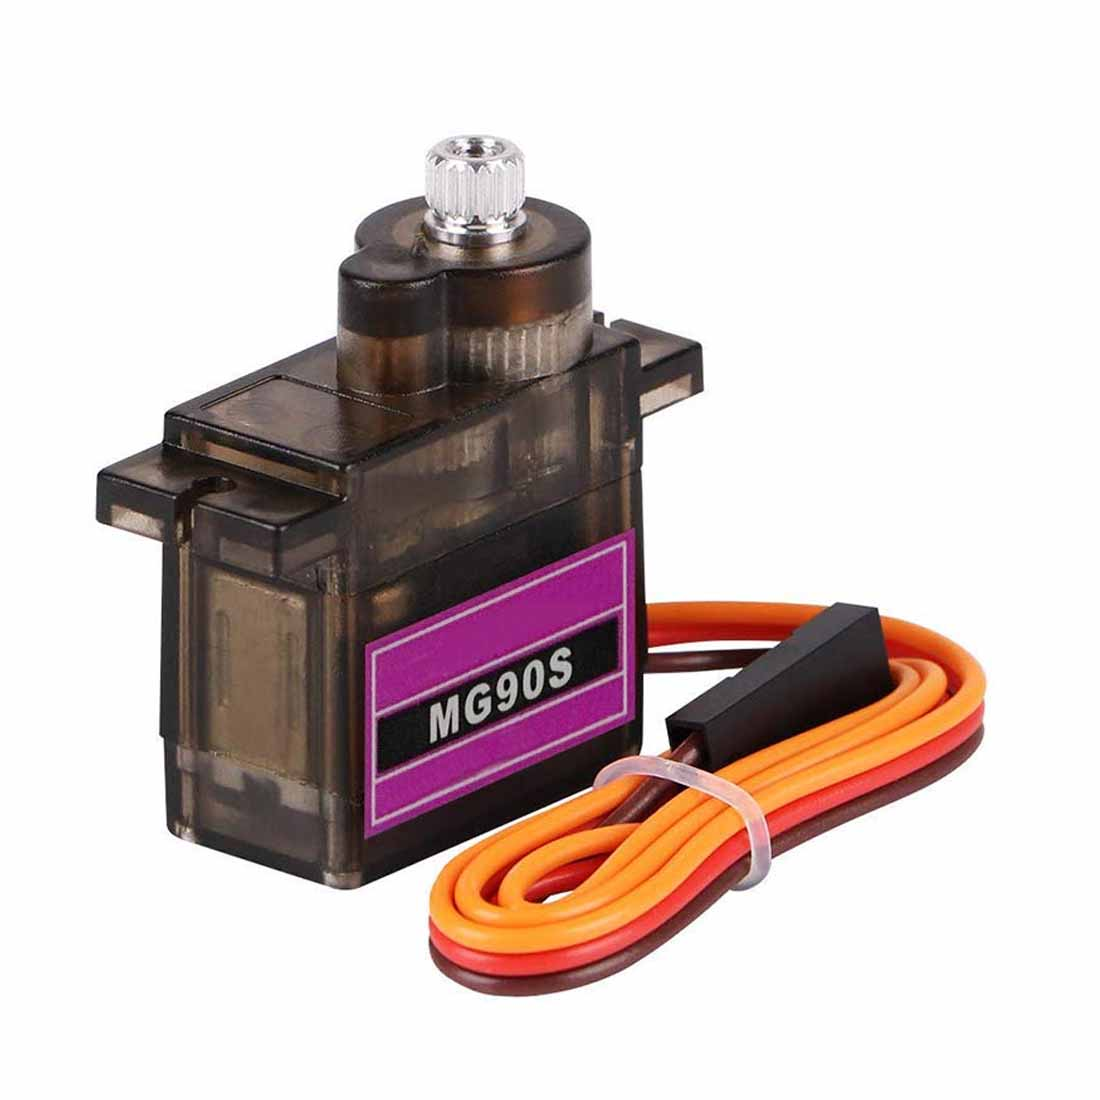 1pcs/lot Mitoot MG90S Metal gear Digital 9g Servo SG90 For Rc Helicopter pPlane Boat Car MG90 9G